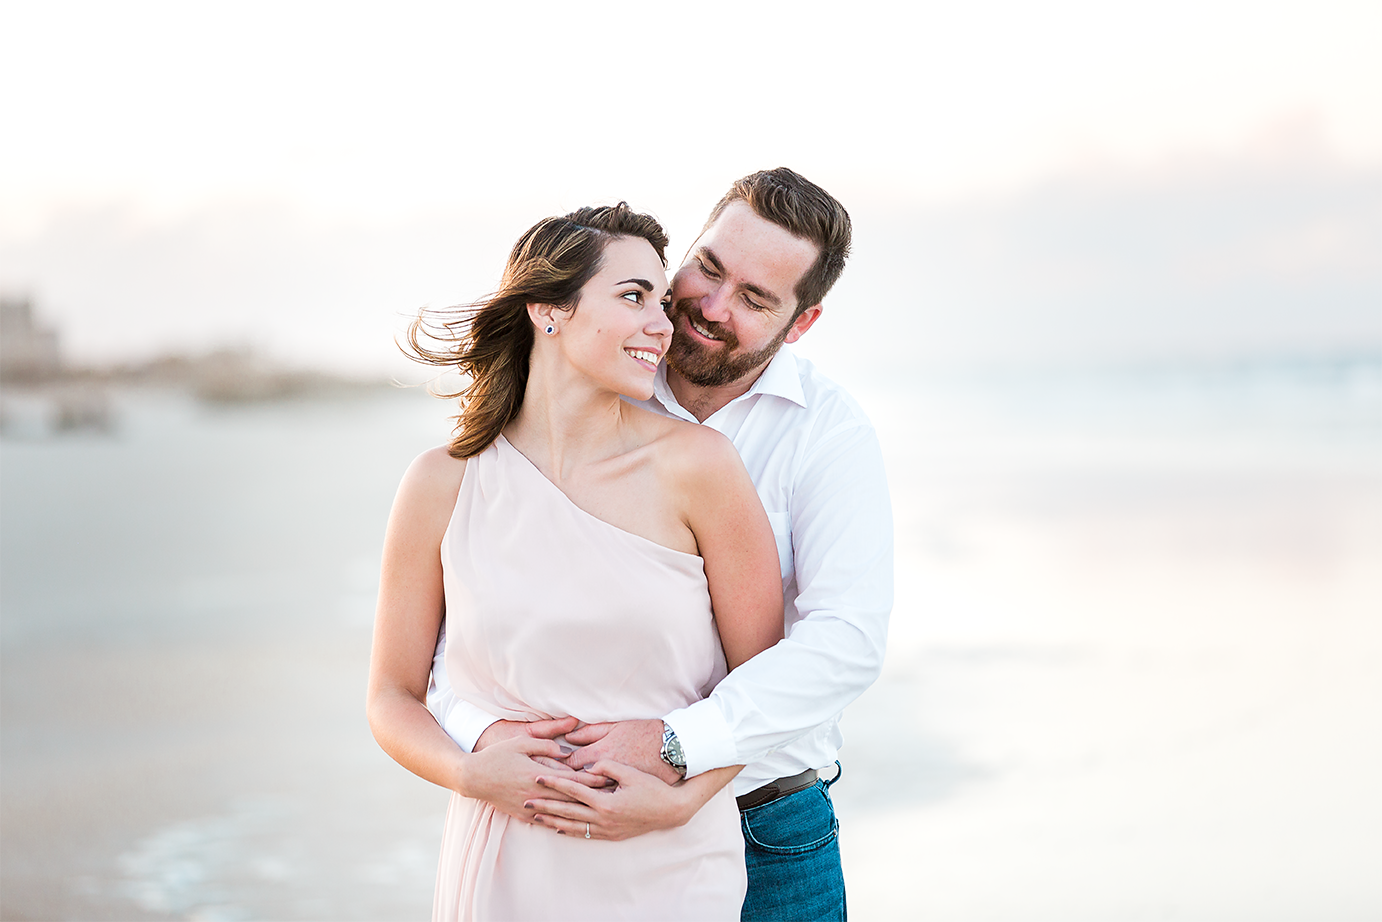 ponte evdra engagement photographer